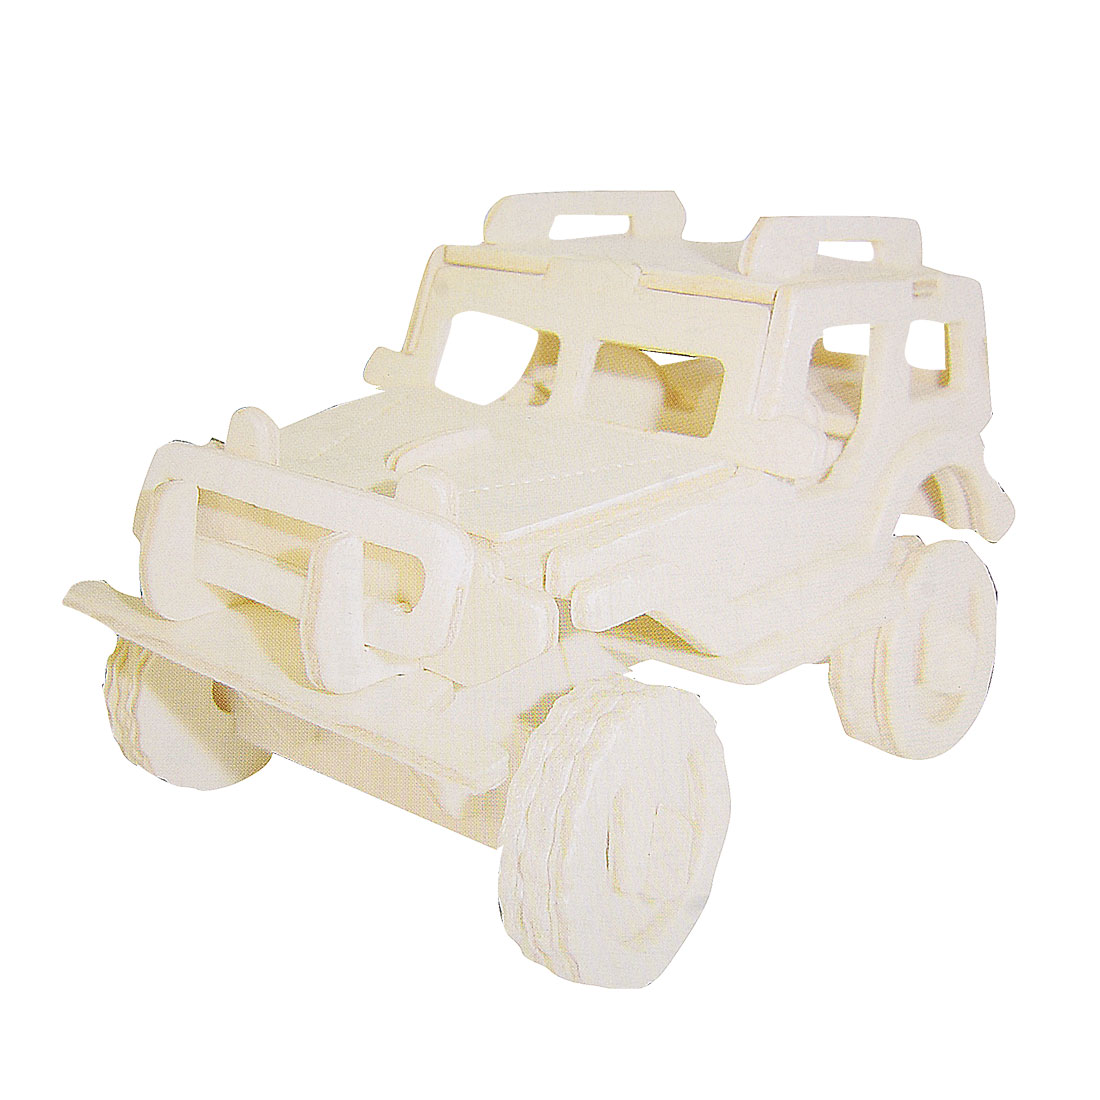 DIY Jeep Car Wooden Construction Kit Woodcraft Puzzle Toy Gift